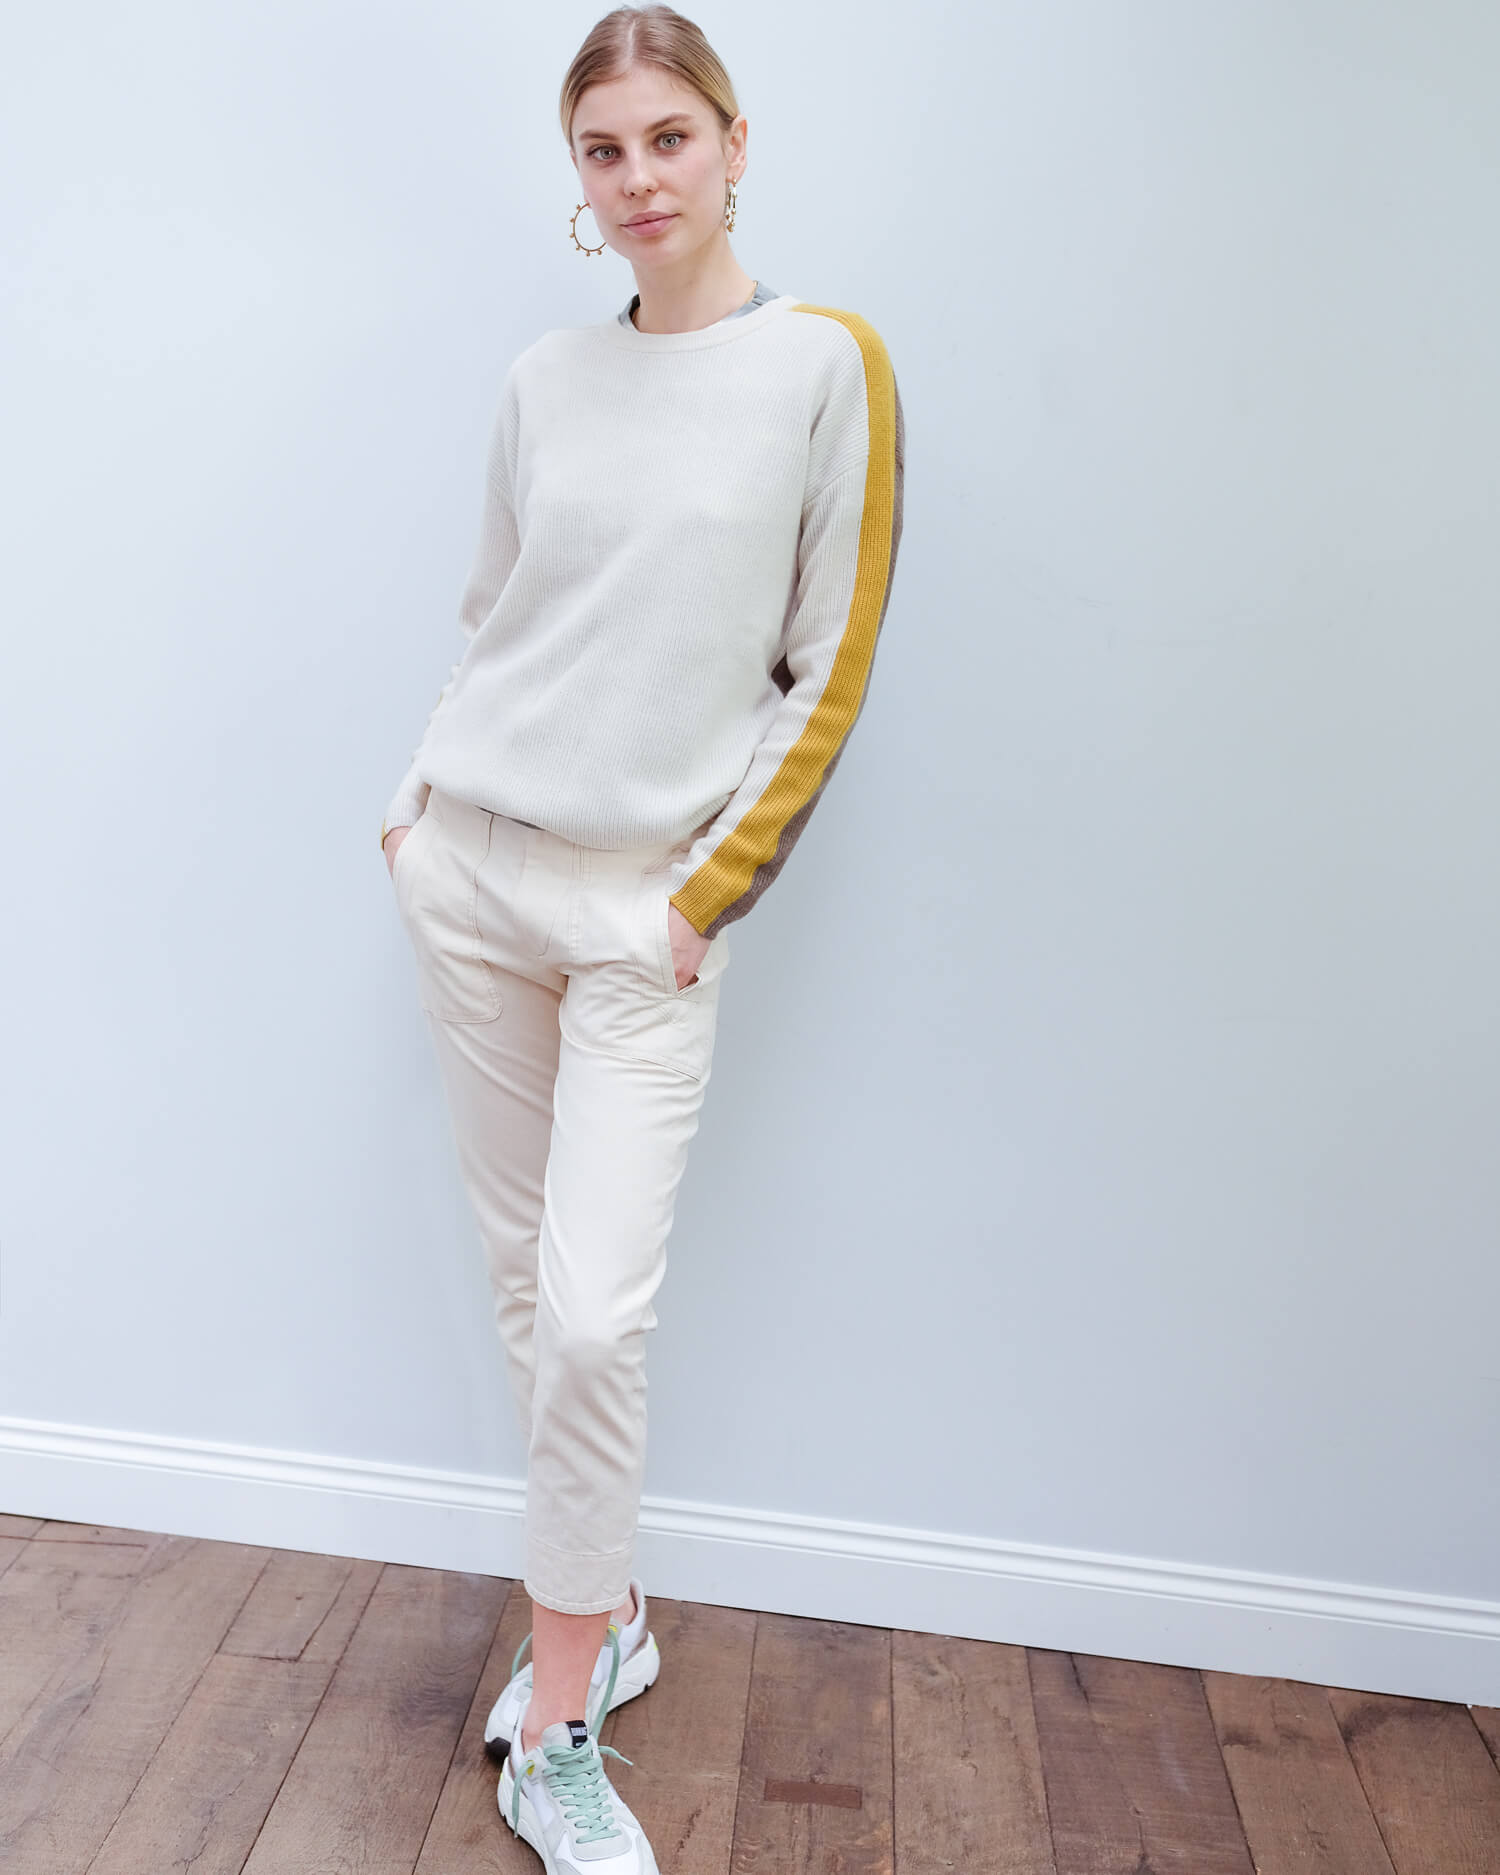 V Polly cashmere knit in milk